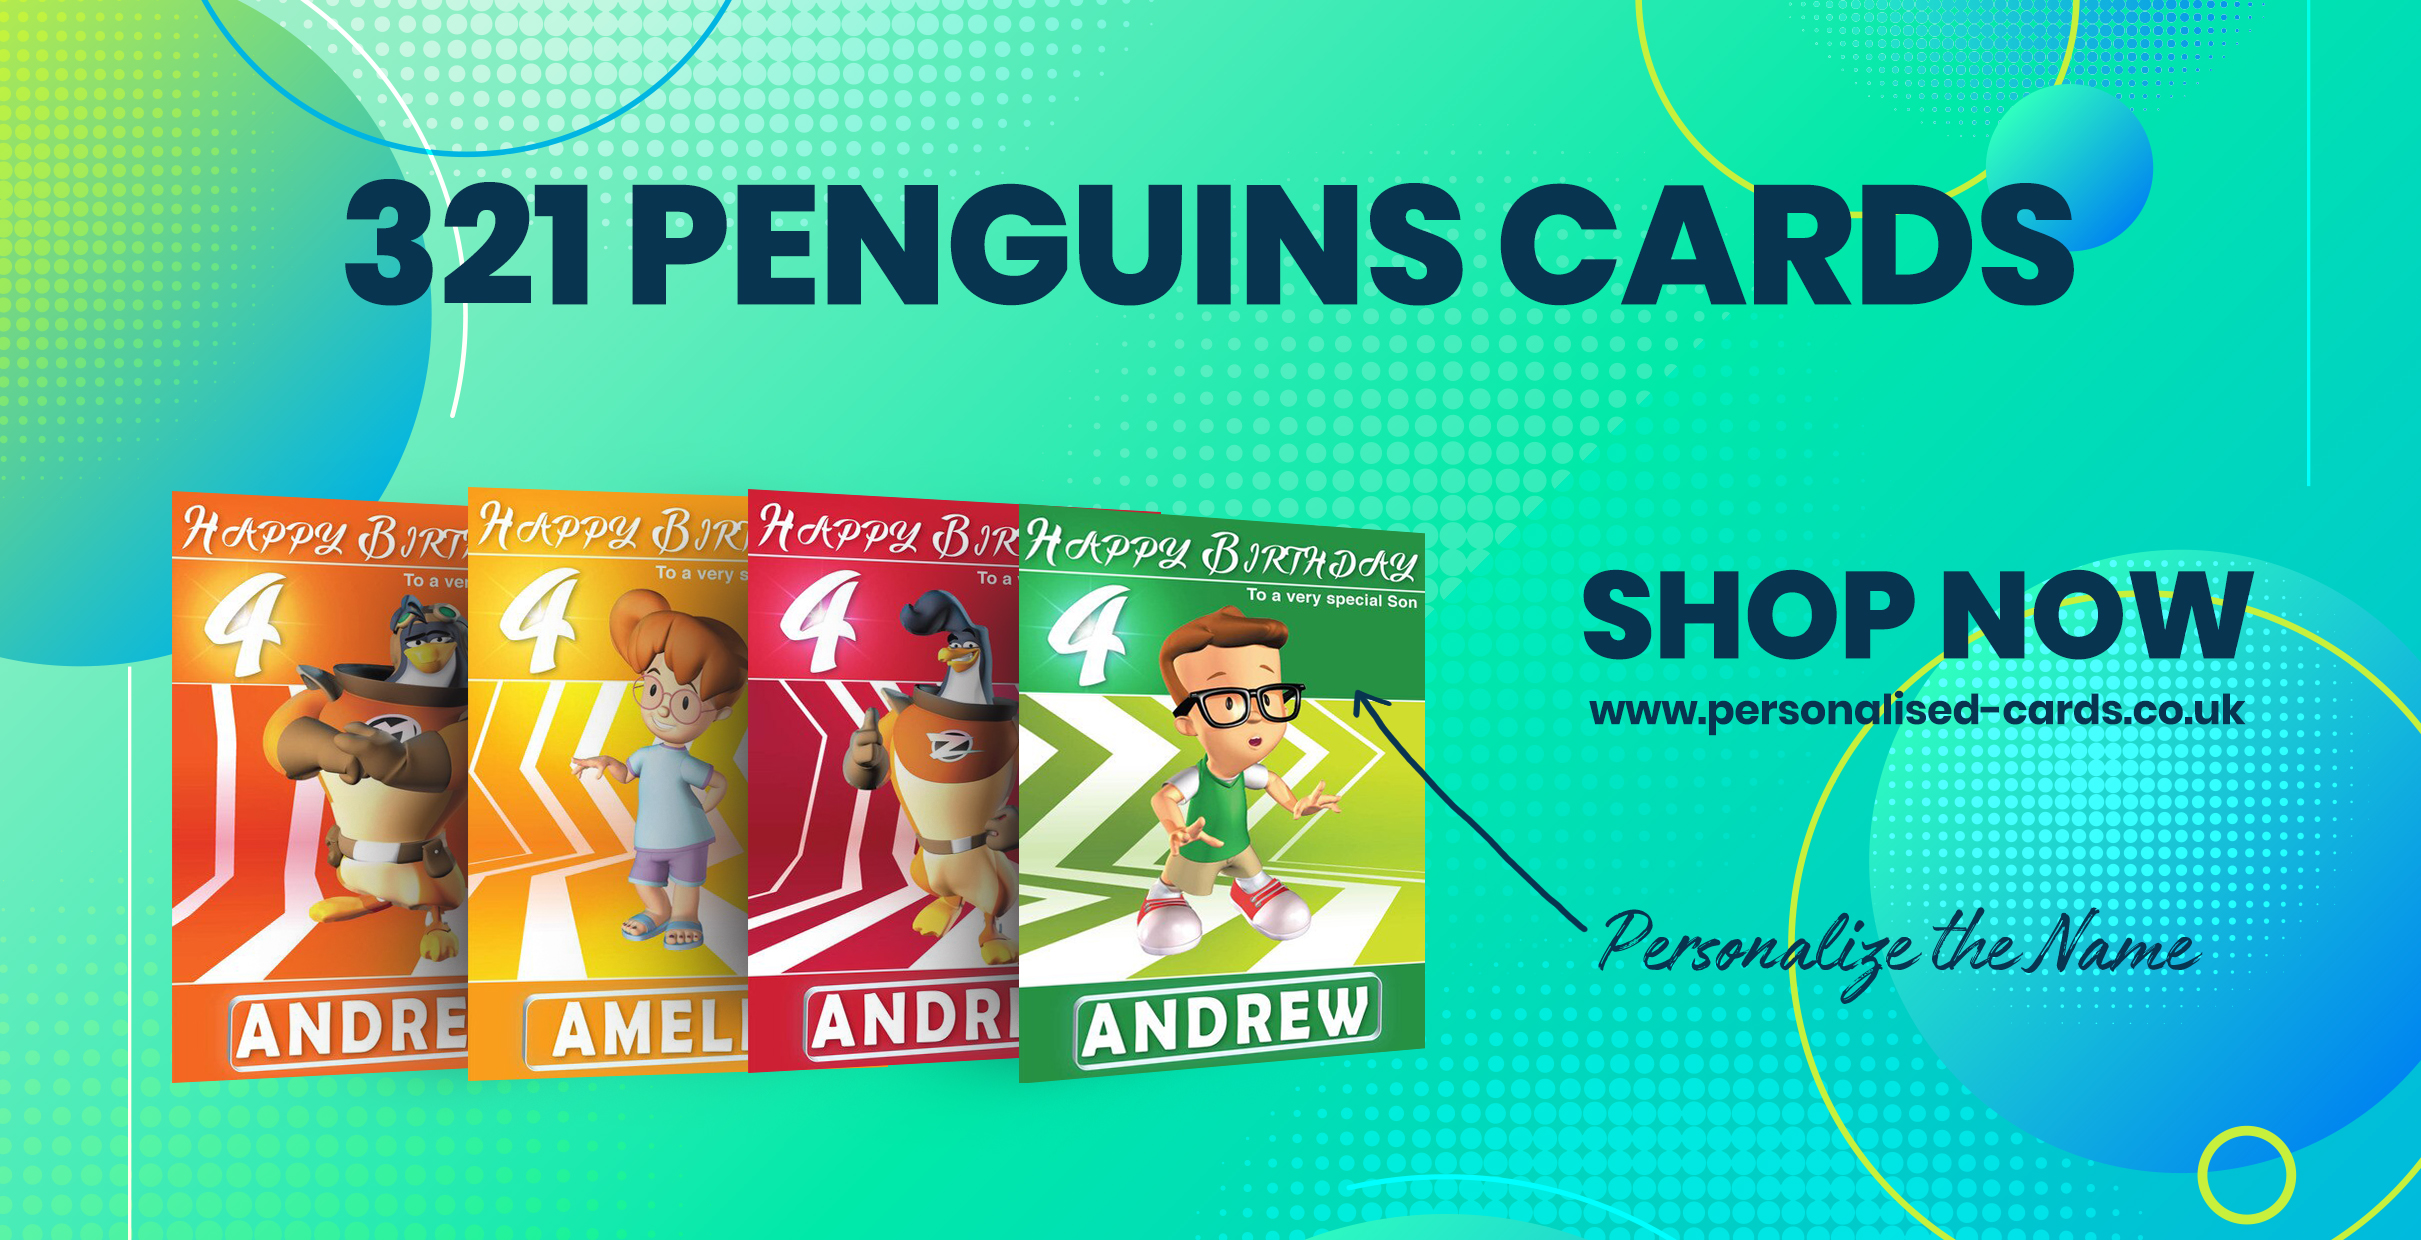 321-penguins-cards.jpg